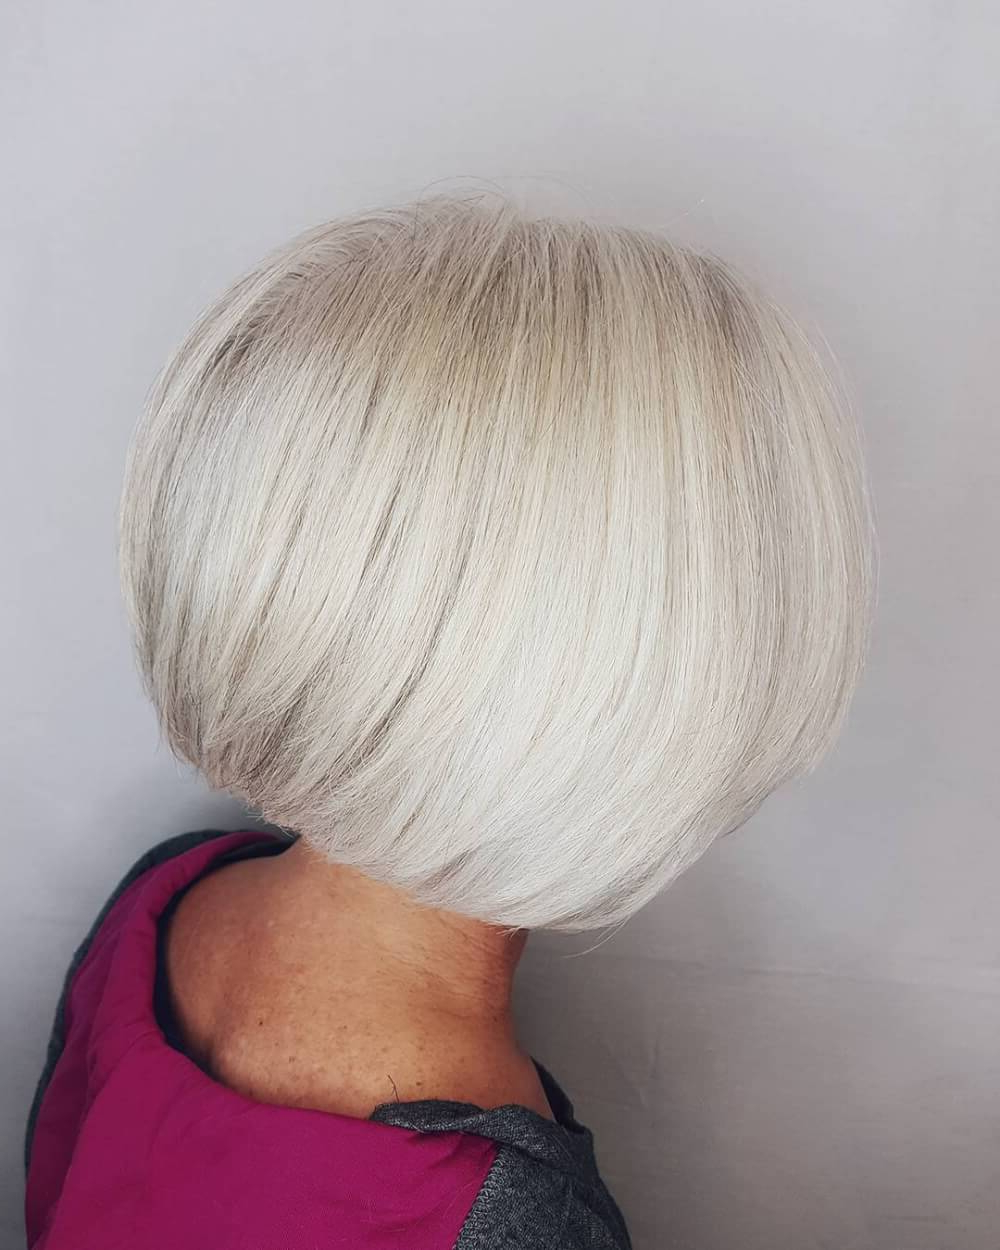 49 Chic Short Bob Hairstyles & Haircuts For Women In 2018 Regarding Silver And Sophisticated Hairstyles (Gallery 12 of 20)